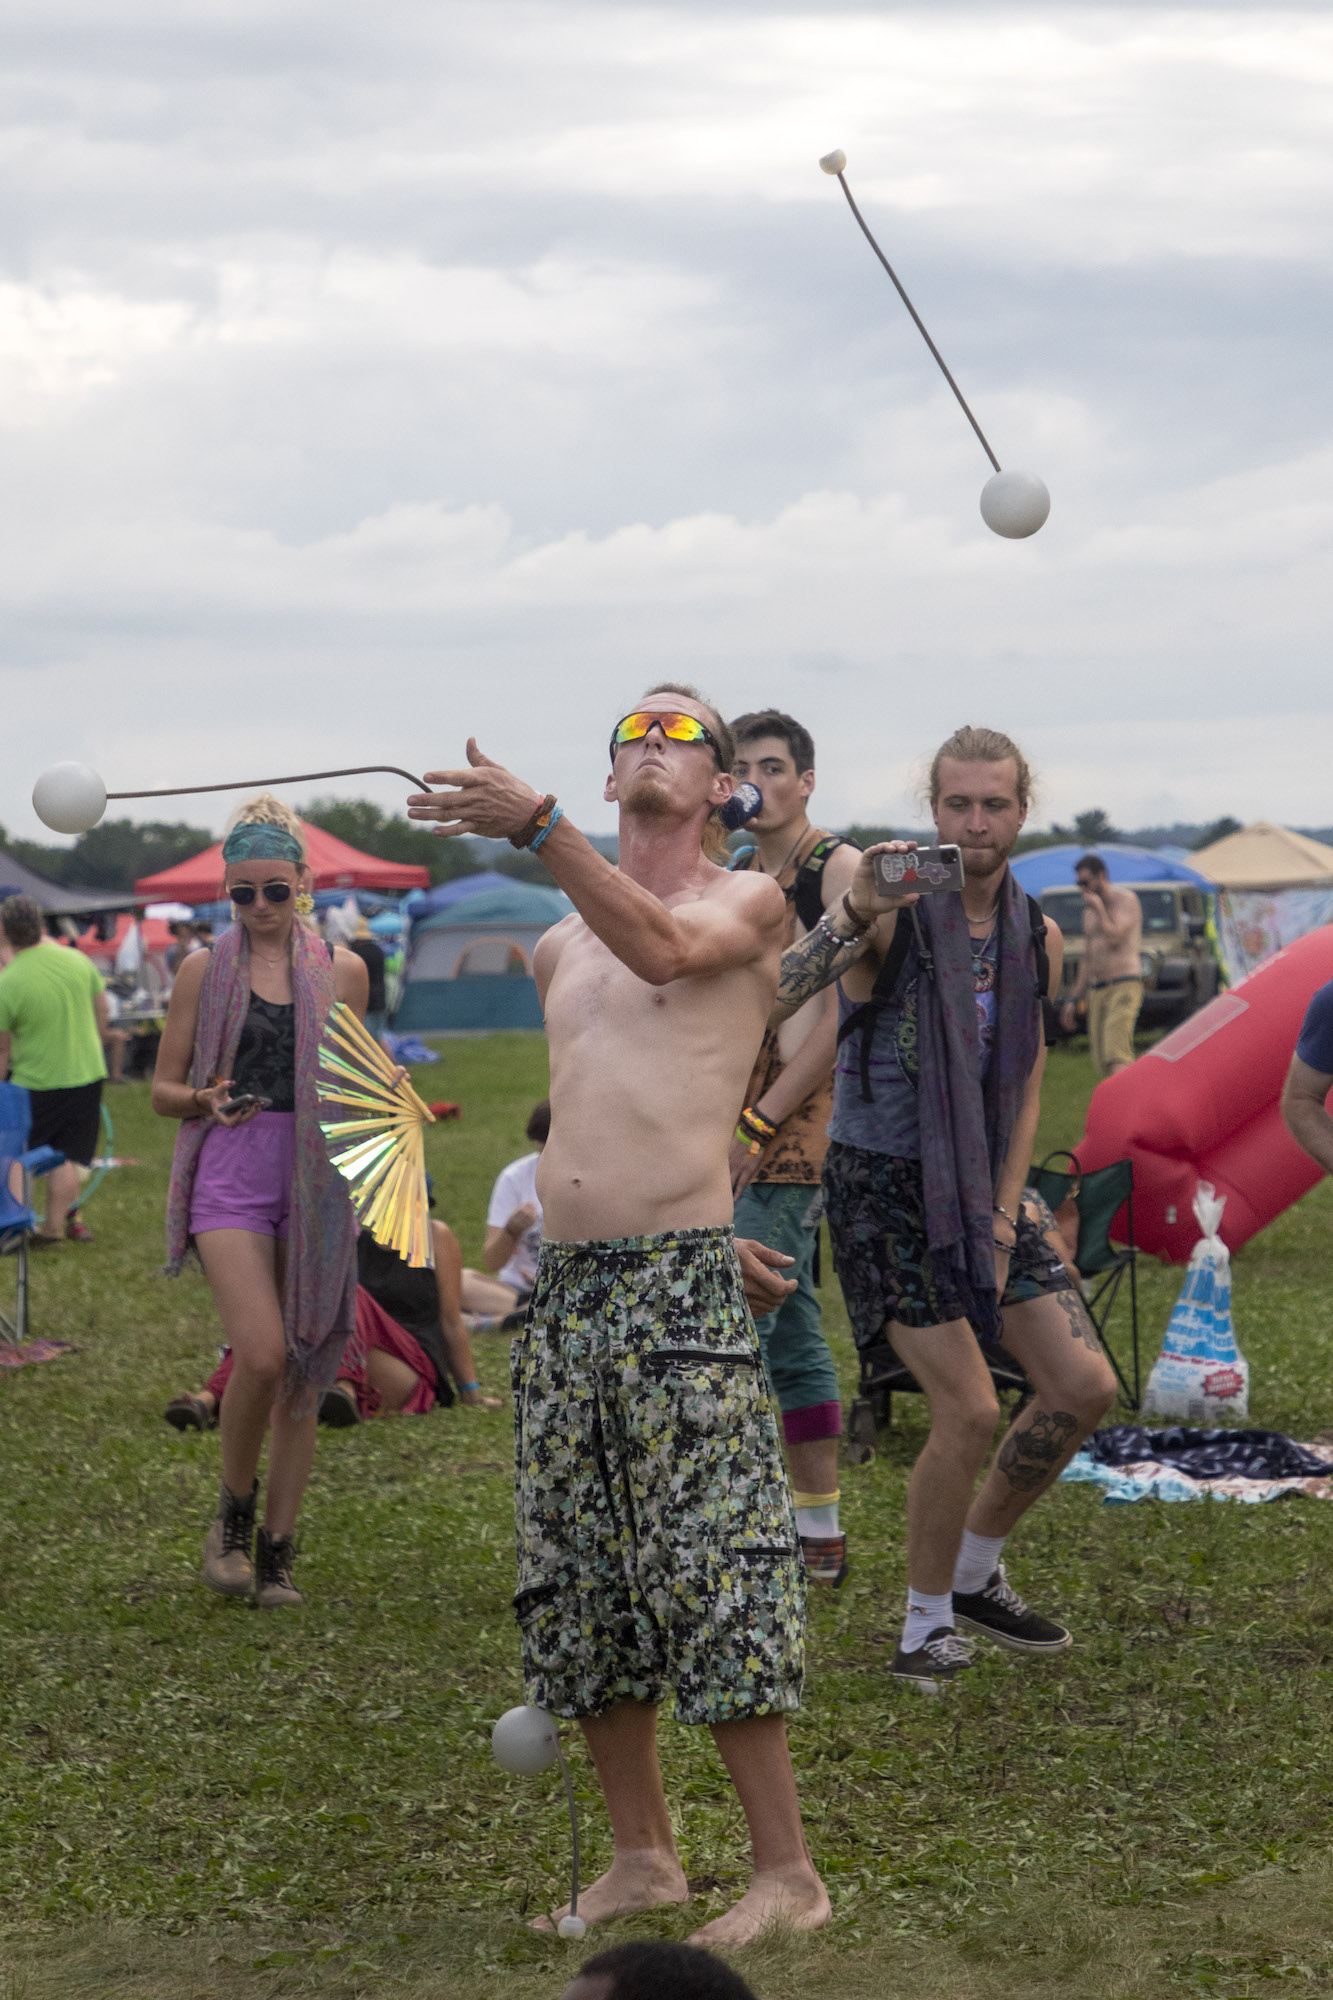 Summer Camp Music Fest - Day 1 [GALLERY] 26